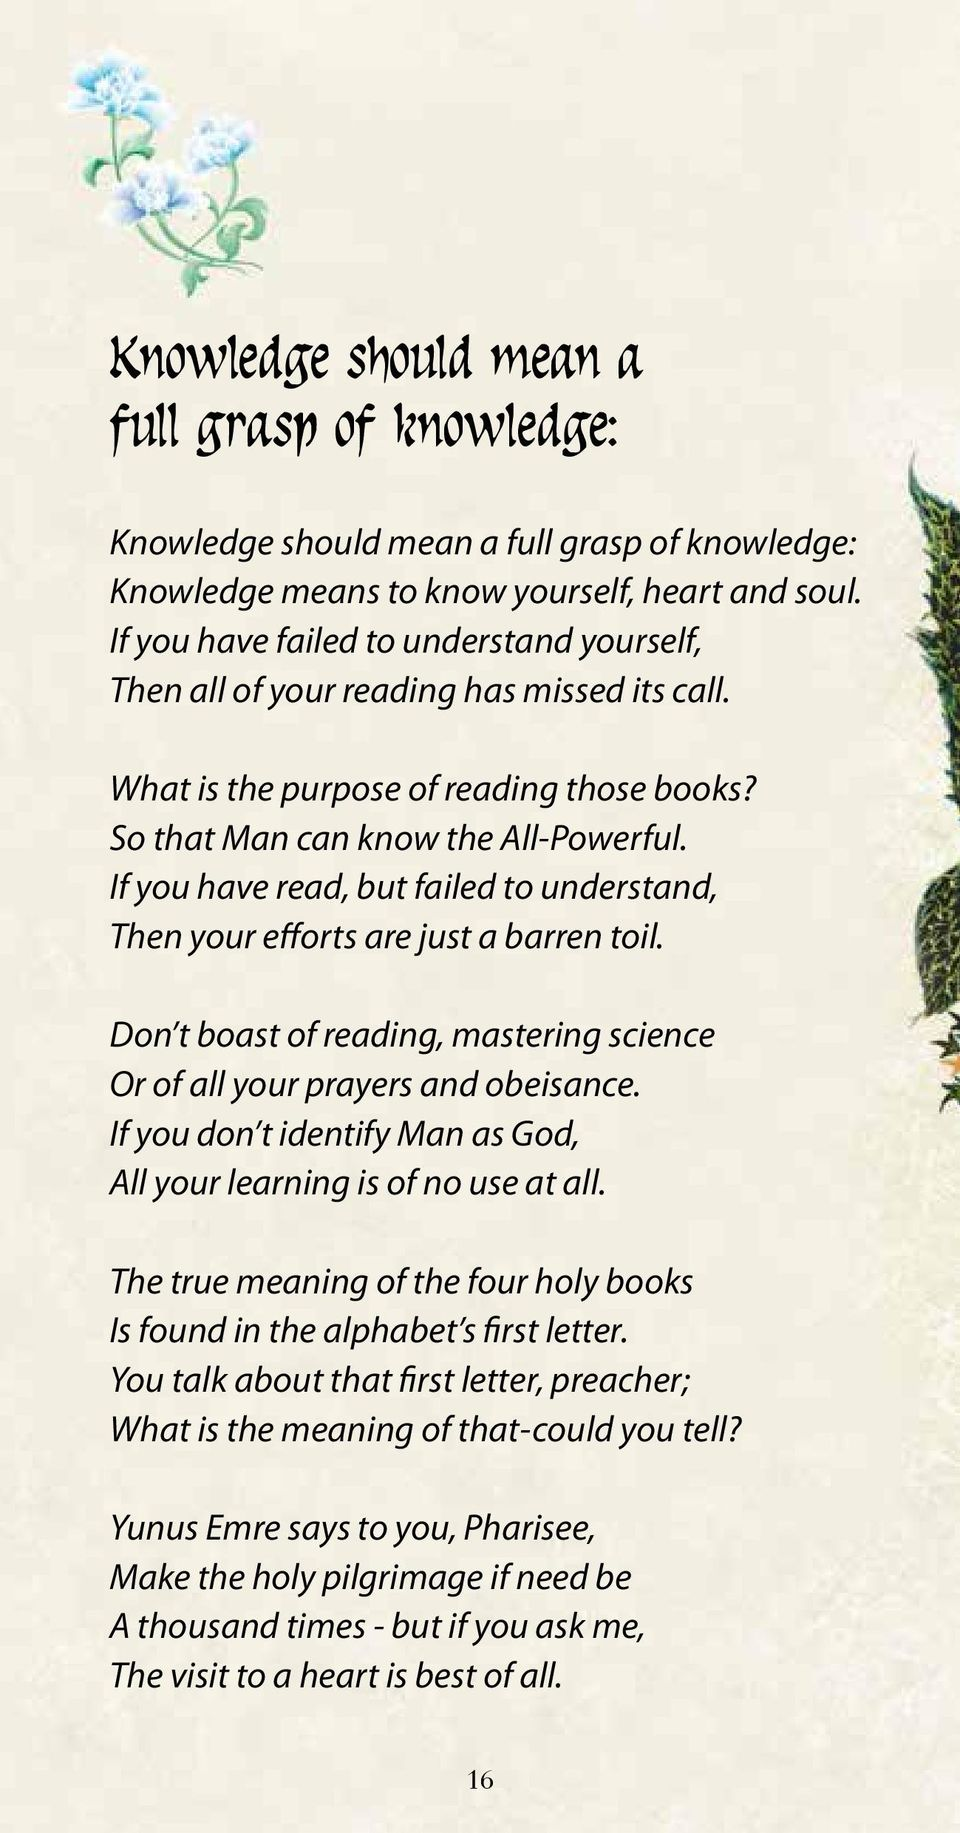 If you have read, but failed to understand, Then your efforts are just a barren toil. Don t boast of reading, mastering science Or of all your prayers and obeisance.